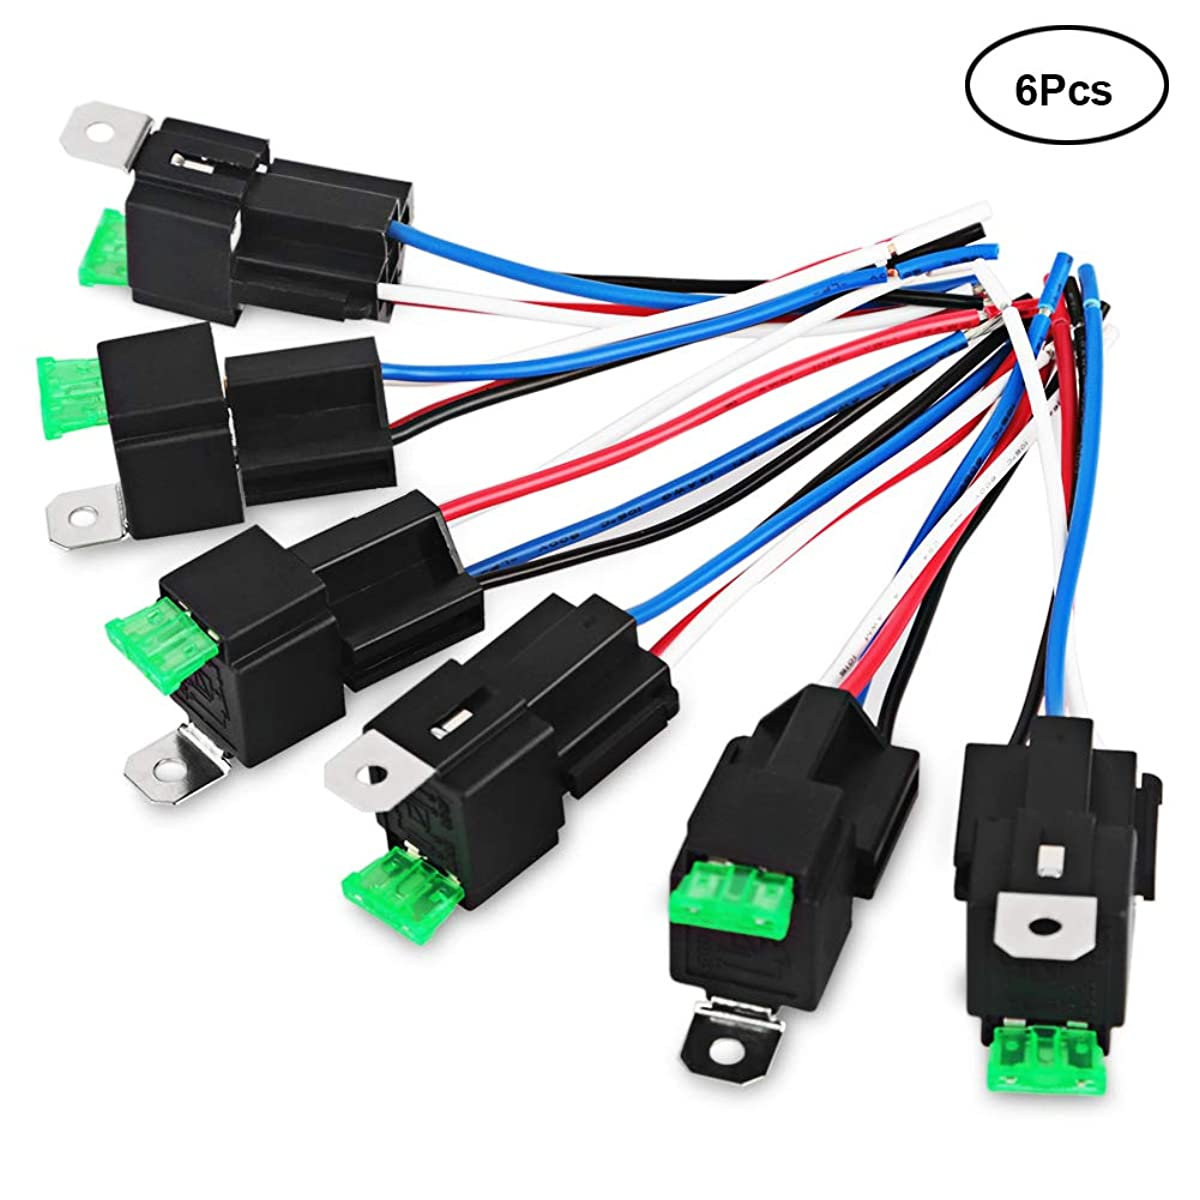 VANING 6 Pack 30A Fuse Relay Switch Harness Set 14 AWG Hot Wires- 4-Pin 12V DC SPST Automotive Relay (6 Pack)